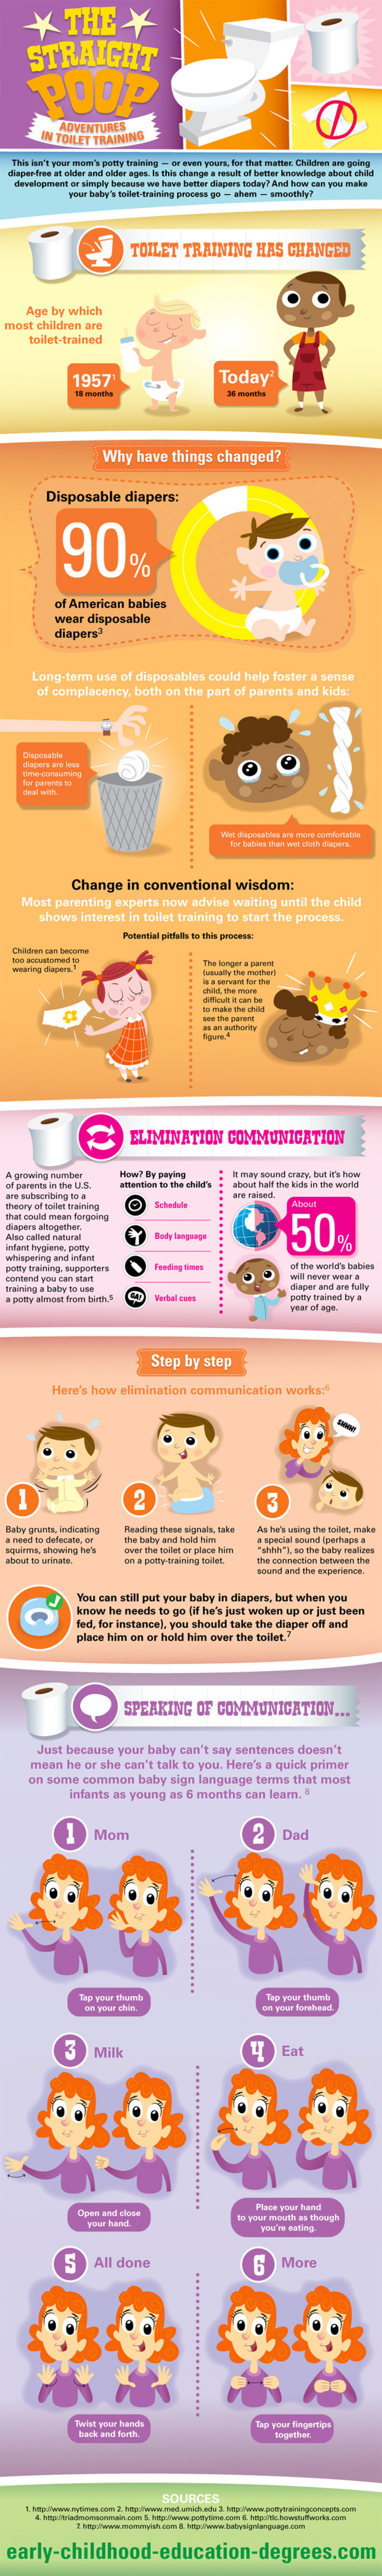 The Straight Poop: Adventures in Toilet Training Infographic